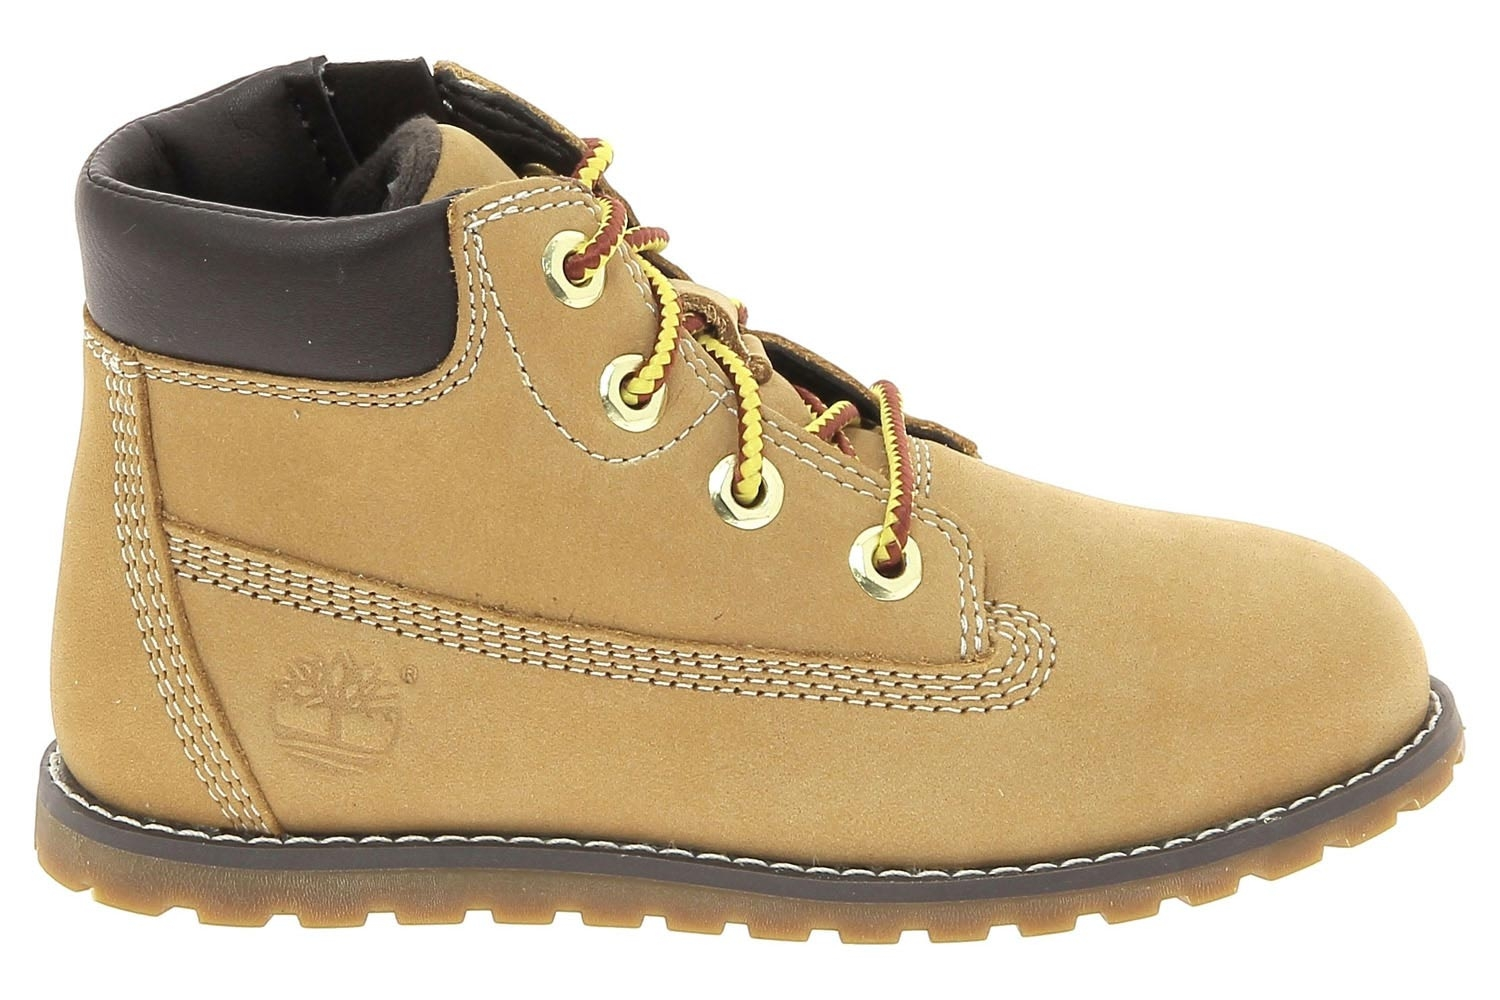 77ccba1da85 Bottillons timberland jaune pokey pine 6in boot chaussures pour bebe ...